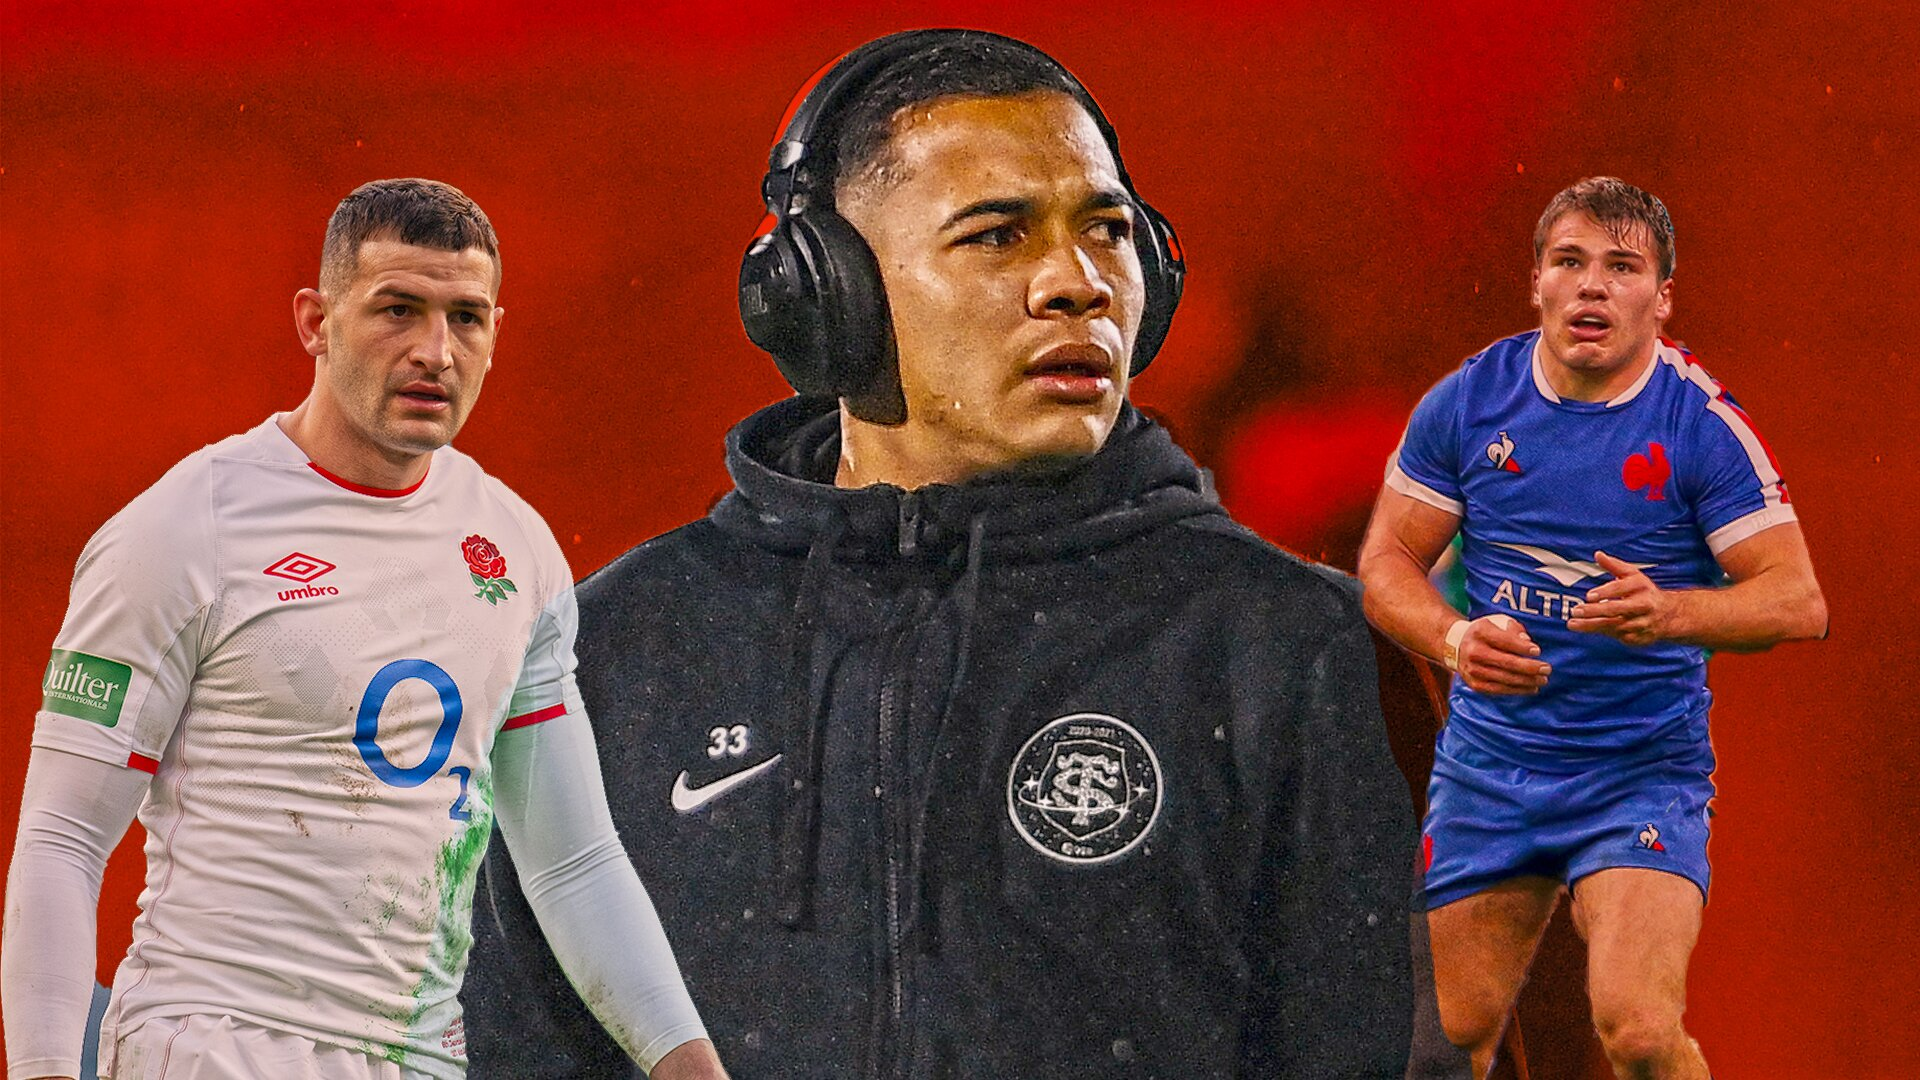 The 50 best rugby players in the world in 2020